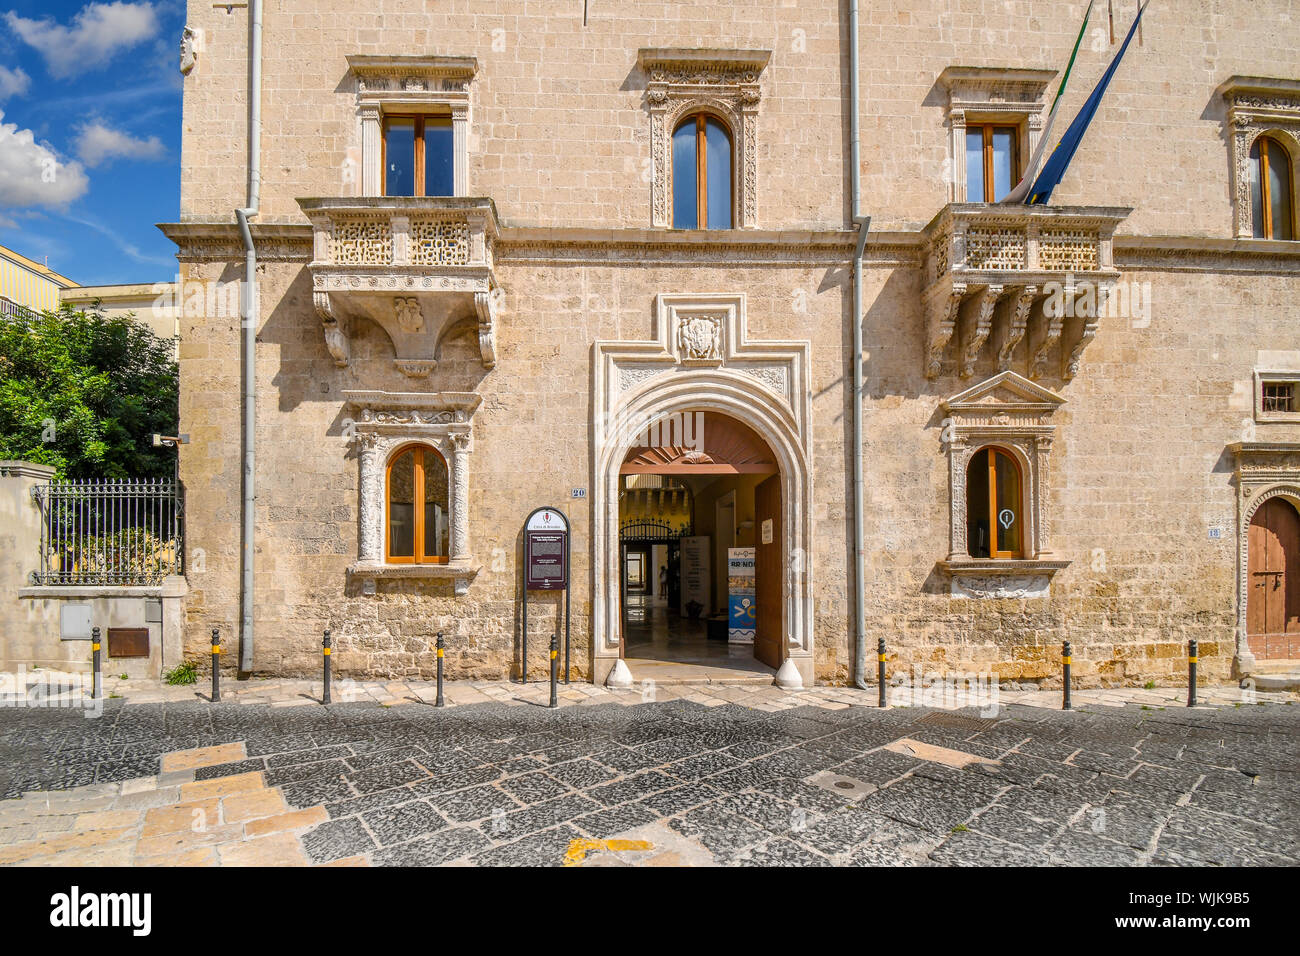 The front facade of the Palazzo Granafei-Nervegna, A 16th-century Renaissance-style palace in the coastal city of Brindisi Italy, in the Puglia region Stock Photo